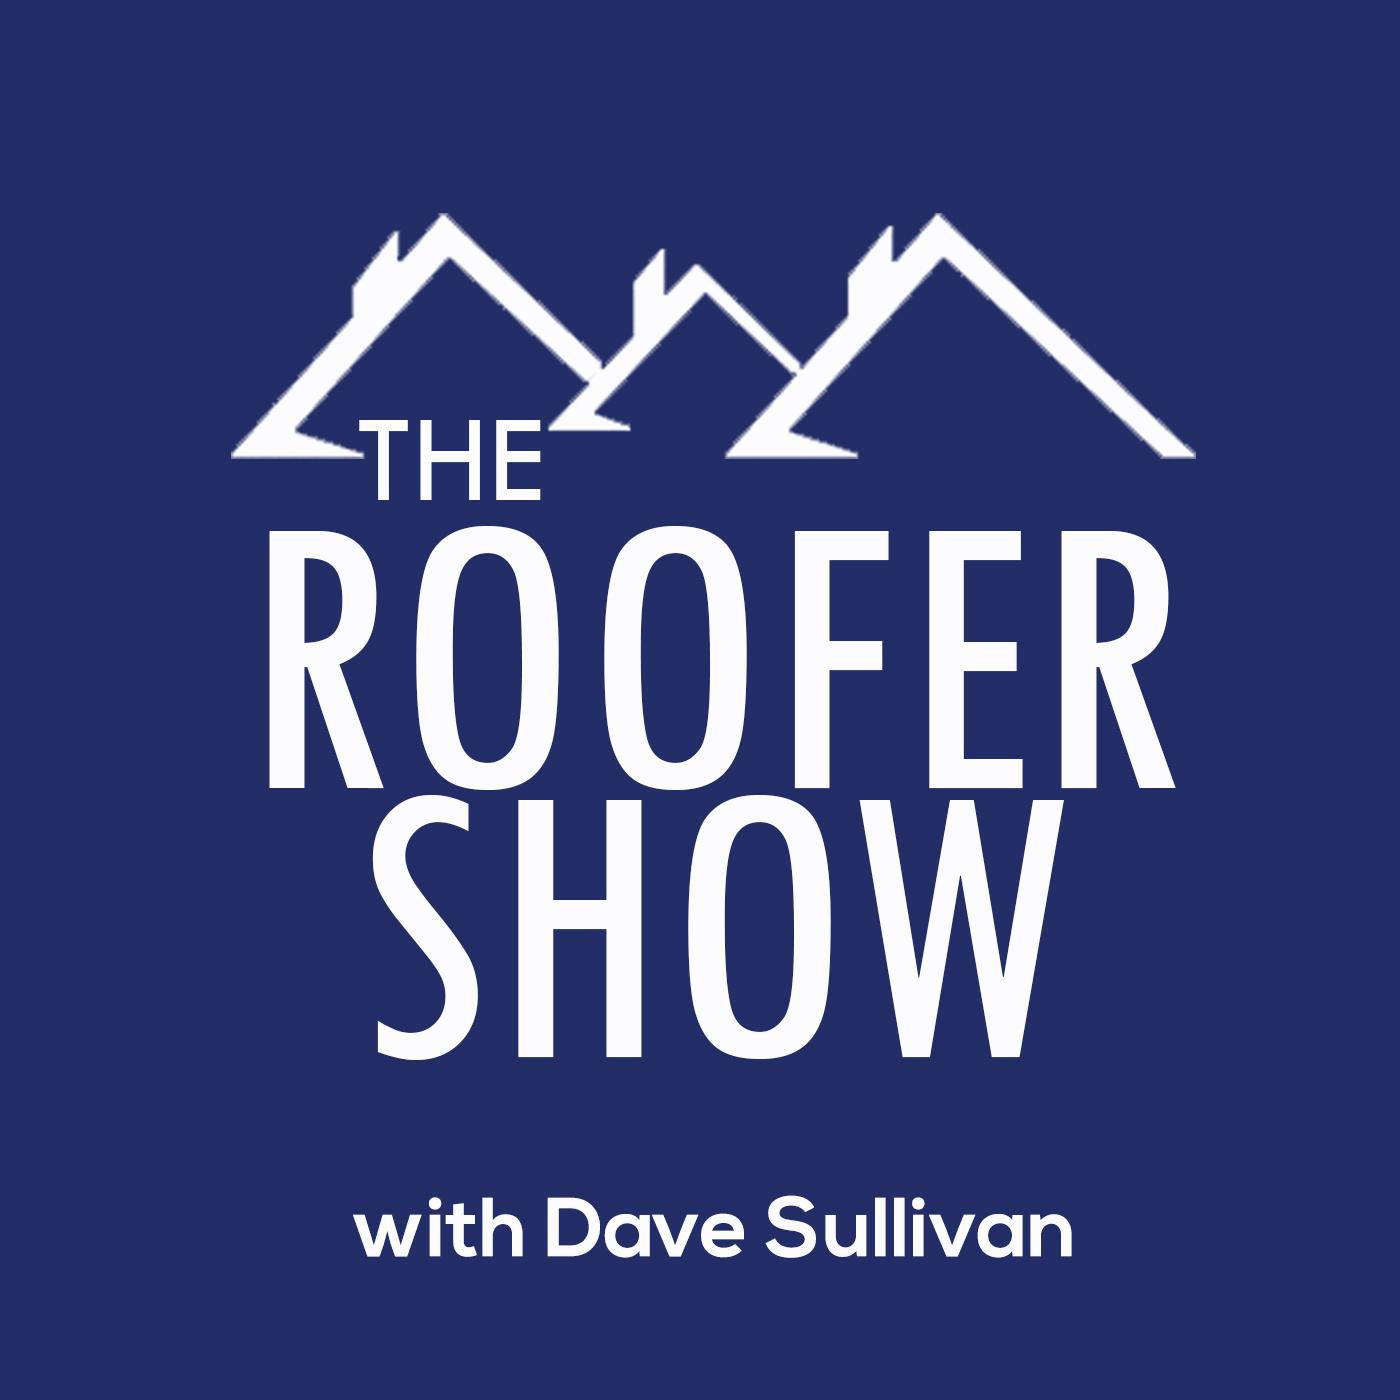 Top Business Podcasts 2020.The Roofer Show Podcast Dave Sullivan Listen Notes